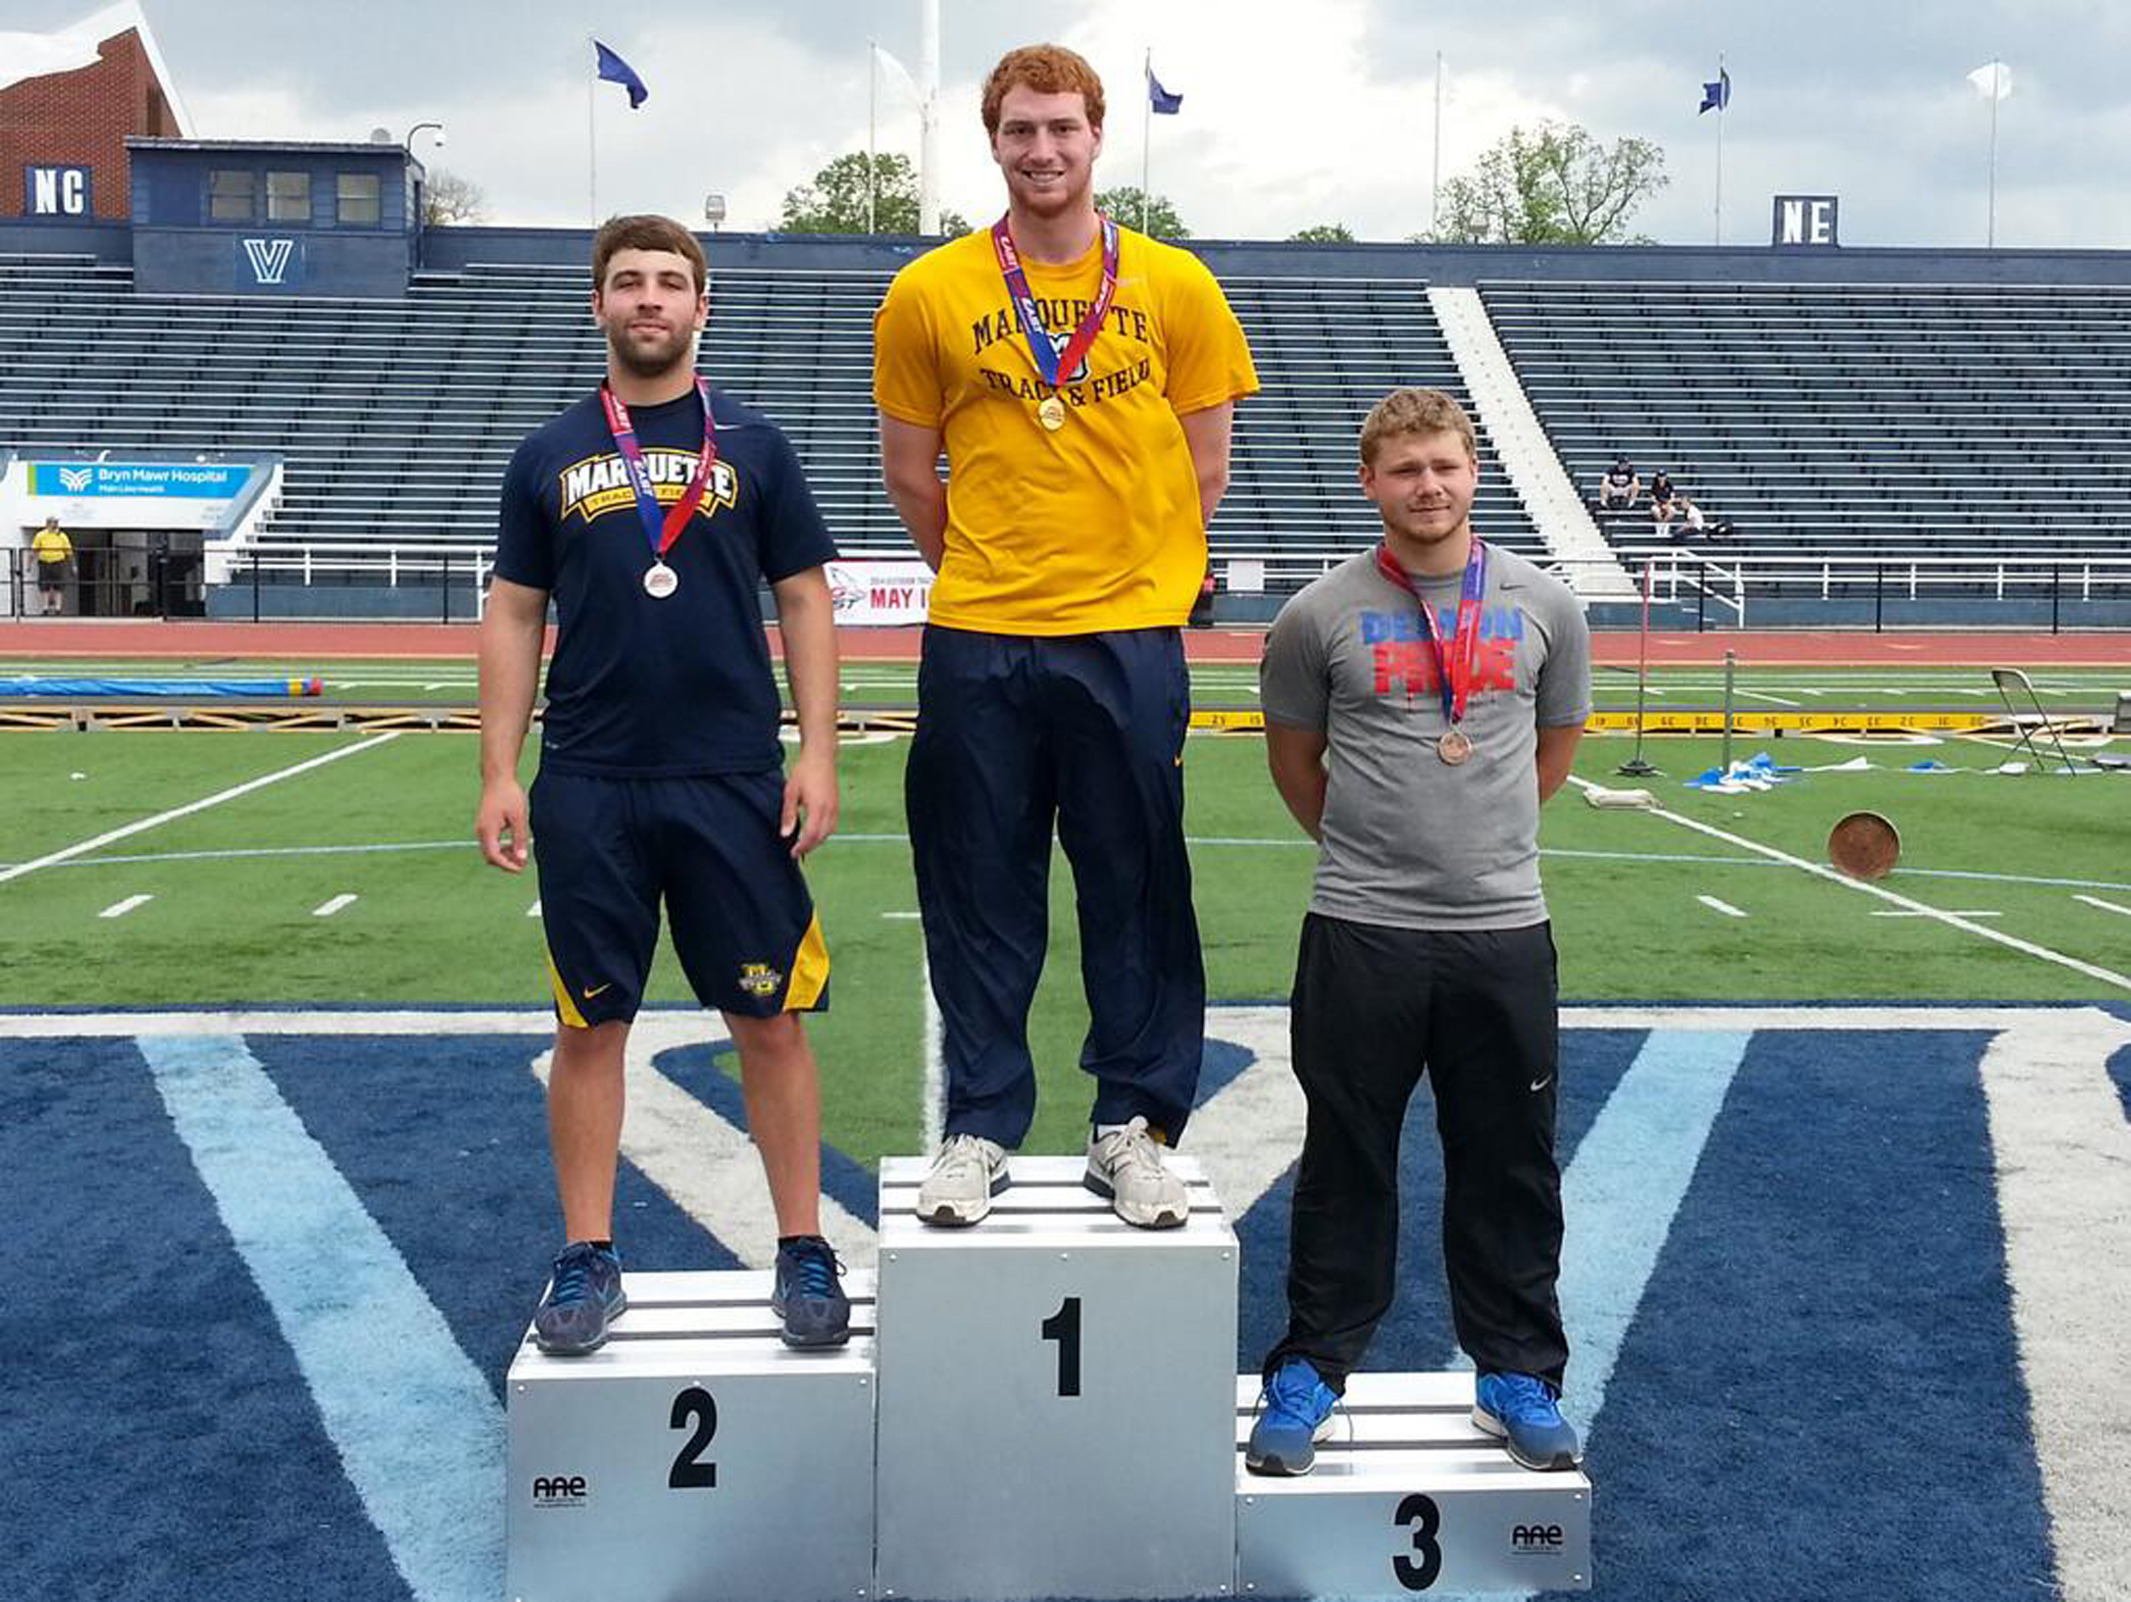 Bret Hardin and Will Koeck return as two of the top throwers in the BIG EAST for their final seasons.